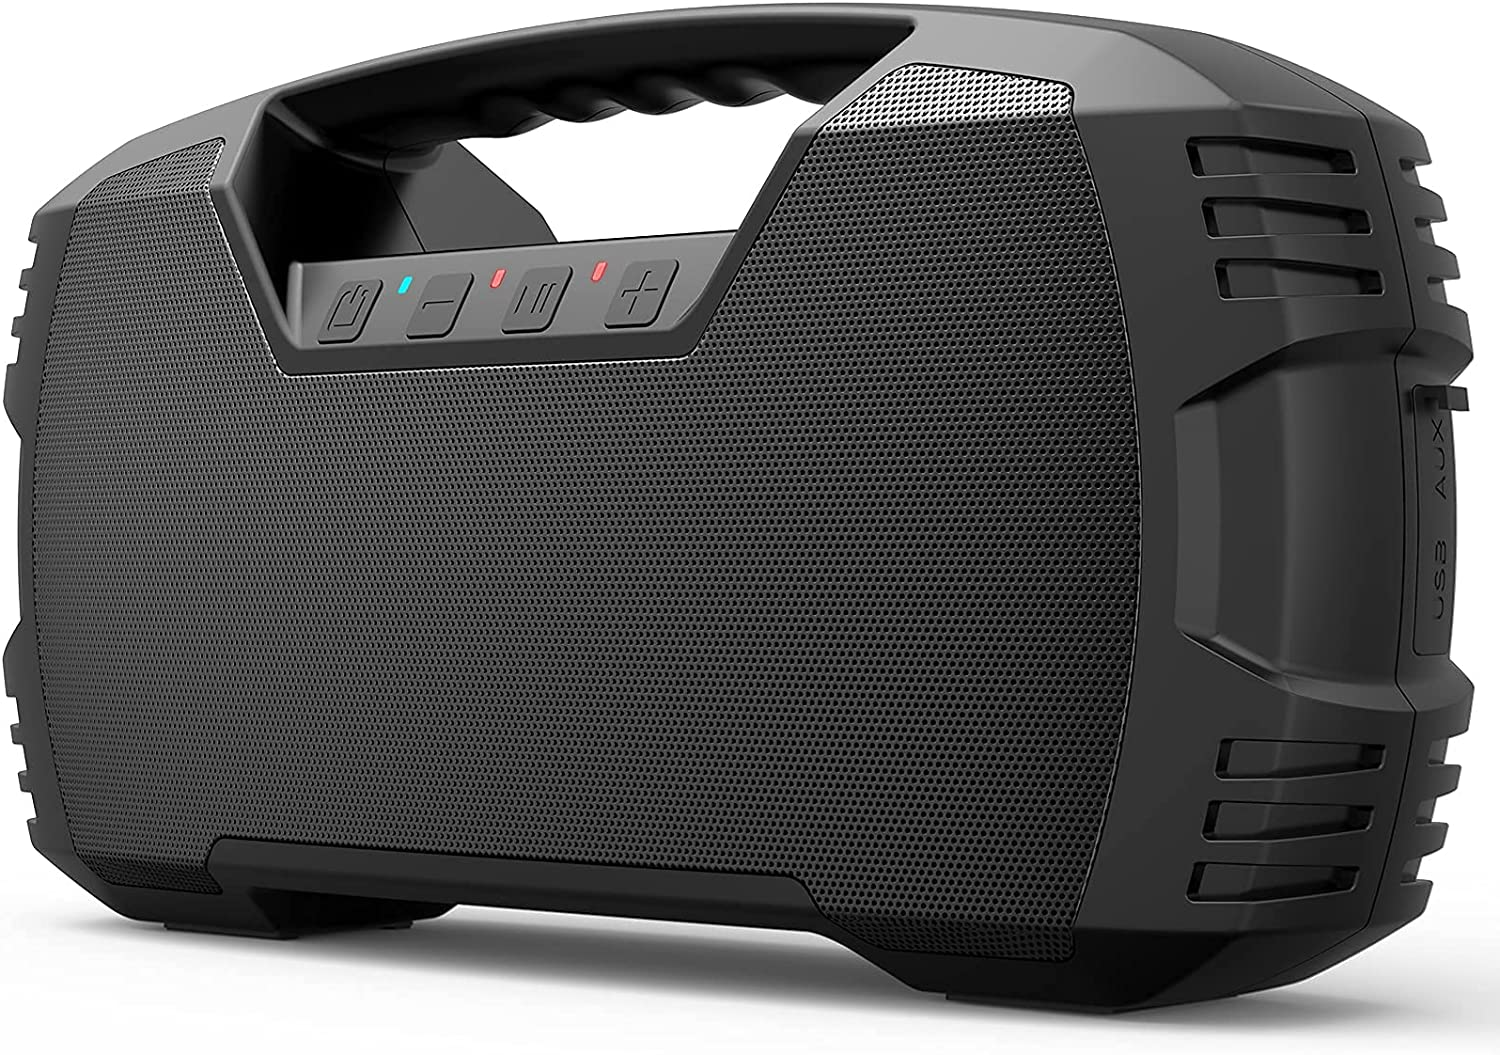 DBSOARS Bluetooth Speaker, 40W (60W Peak), Punchy Bass, 40H Playtime, IPX7,Waterproof Outdoor Wireless Portable Speaker, Loud Stereo Sound, Bluetooth 5.0, 10000mAh Power Bank for Beach Pool Party